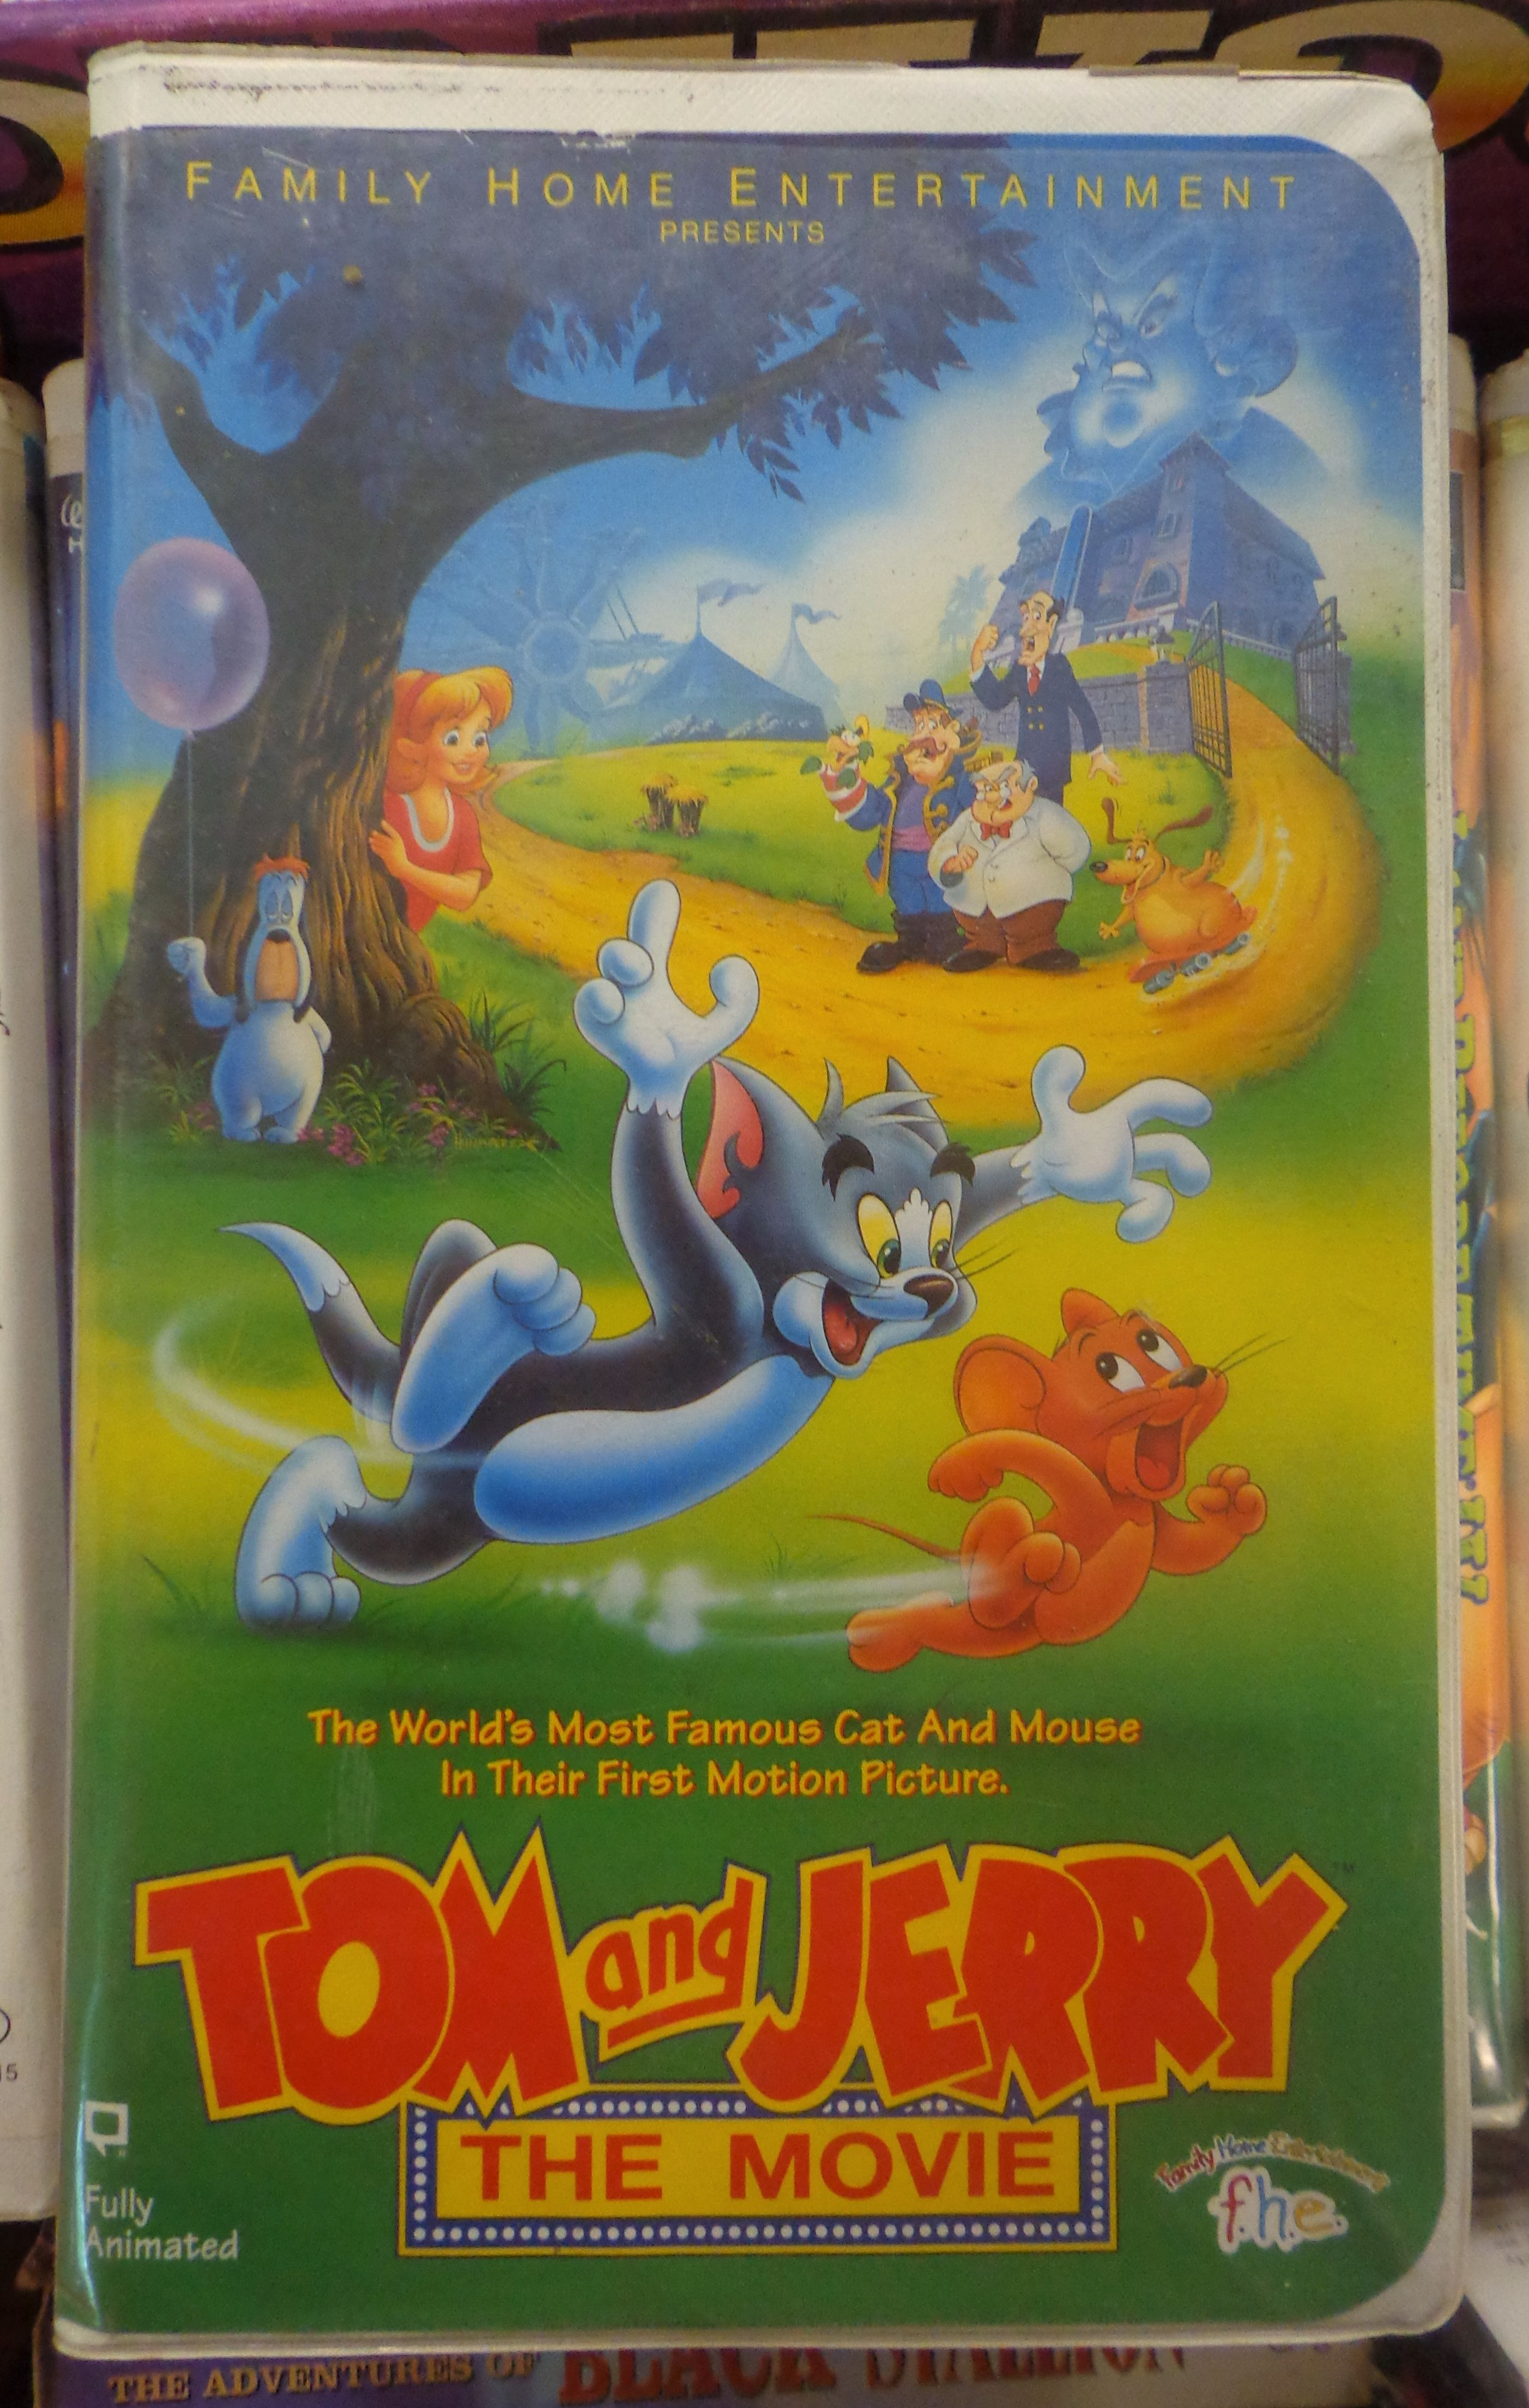 All Sizes Tom And Jerry The Movie 1993 Vhs Family Home Entertainment Flickr Photo Sharing Tom And Jerry Movies Tom And Jerry Movie Posters